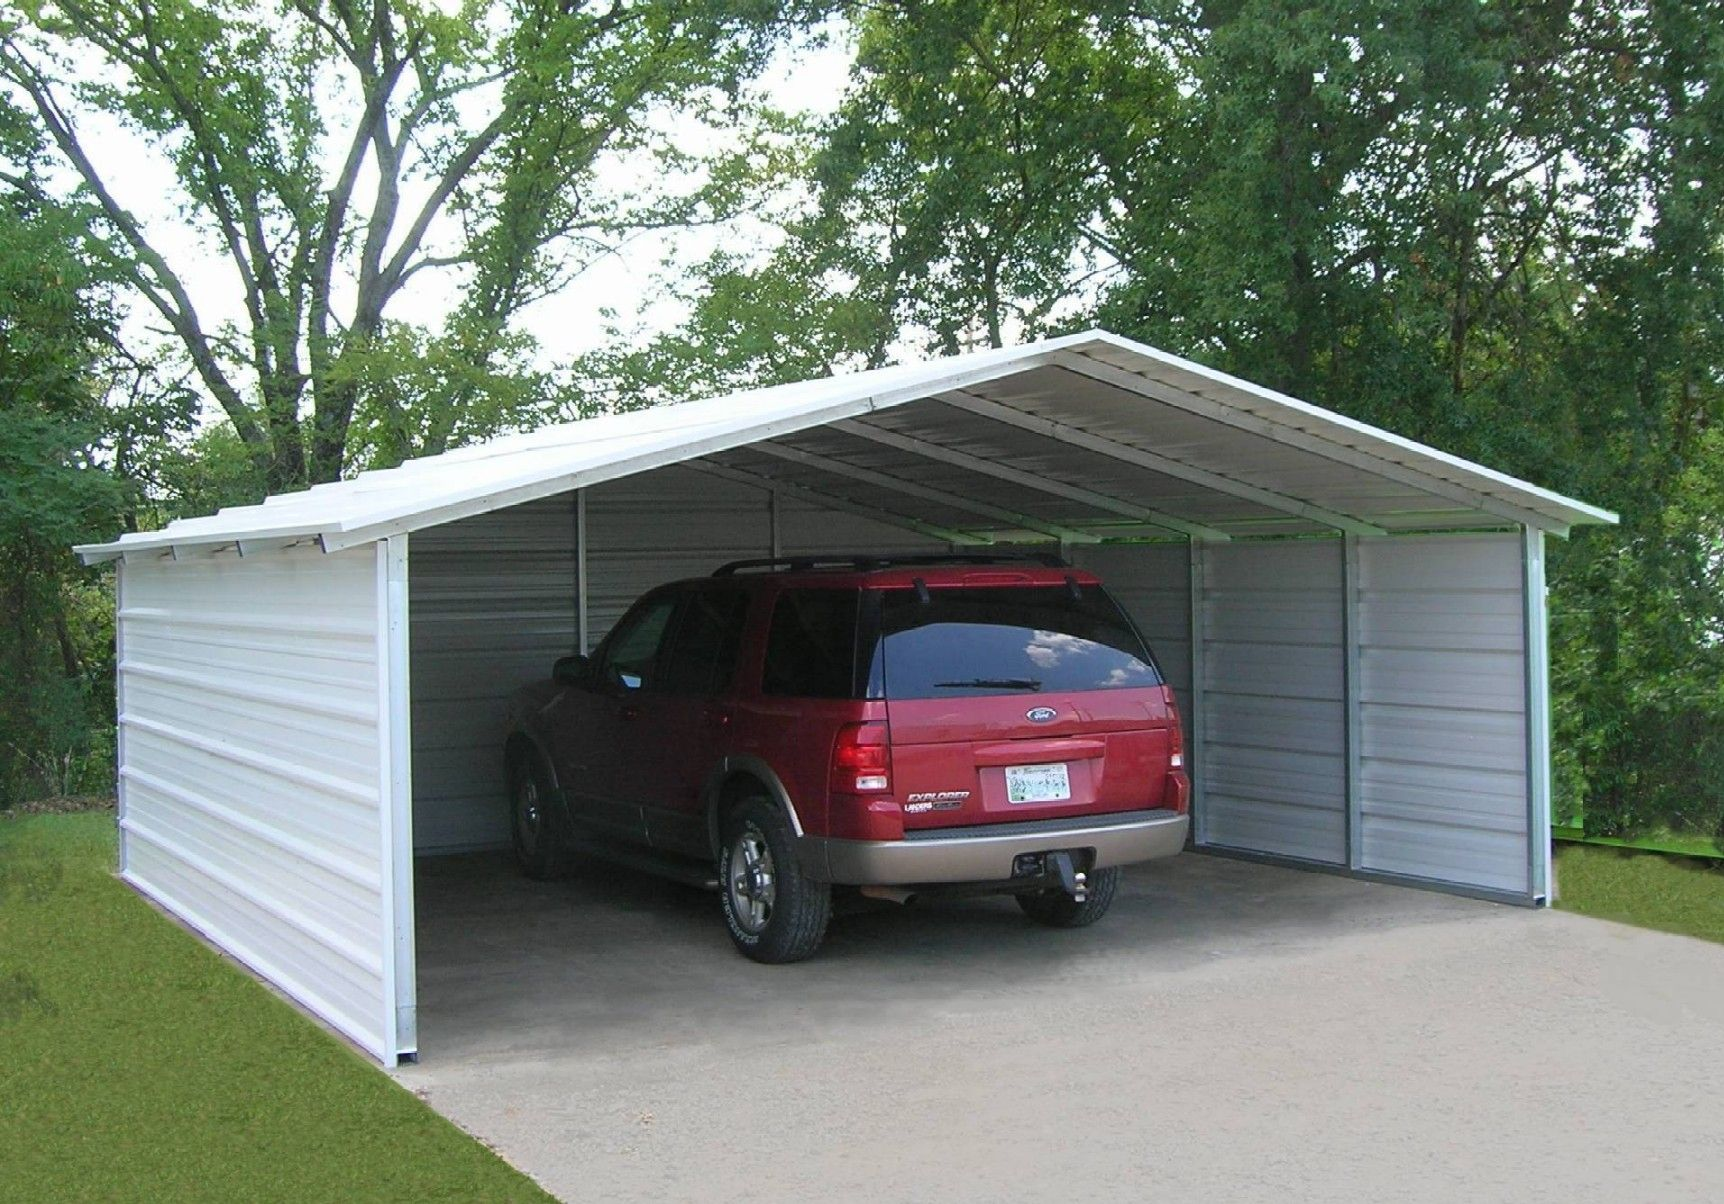 Cheap Carports Carport Garage Portable Carport Diy Carport Palram Carport Wood Carport House Carport C With Images Carport Designs Building A Carport Metal Carports